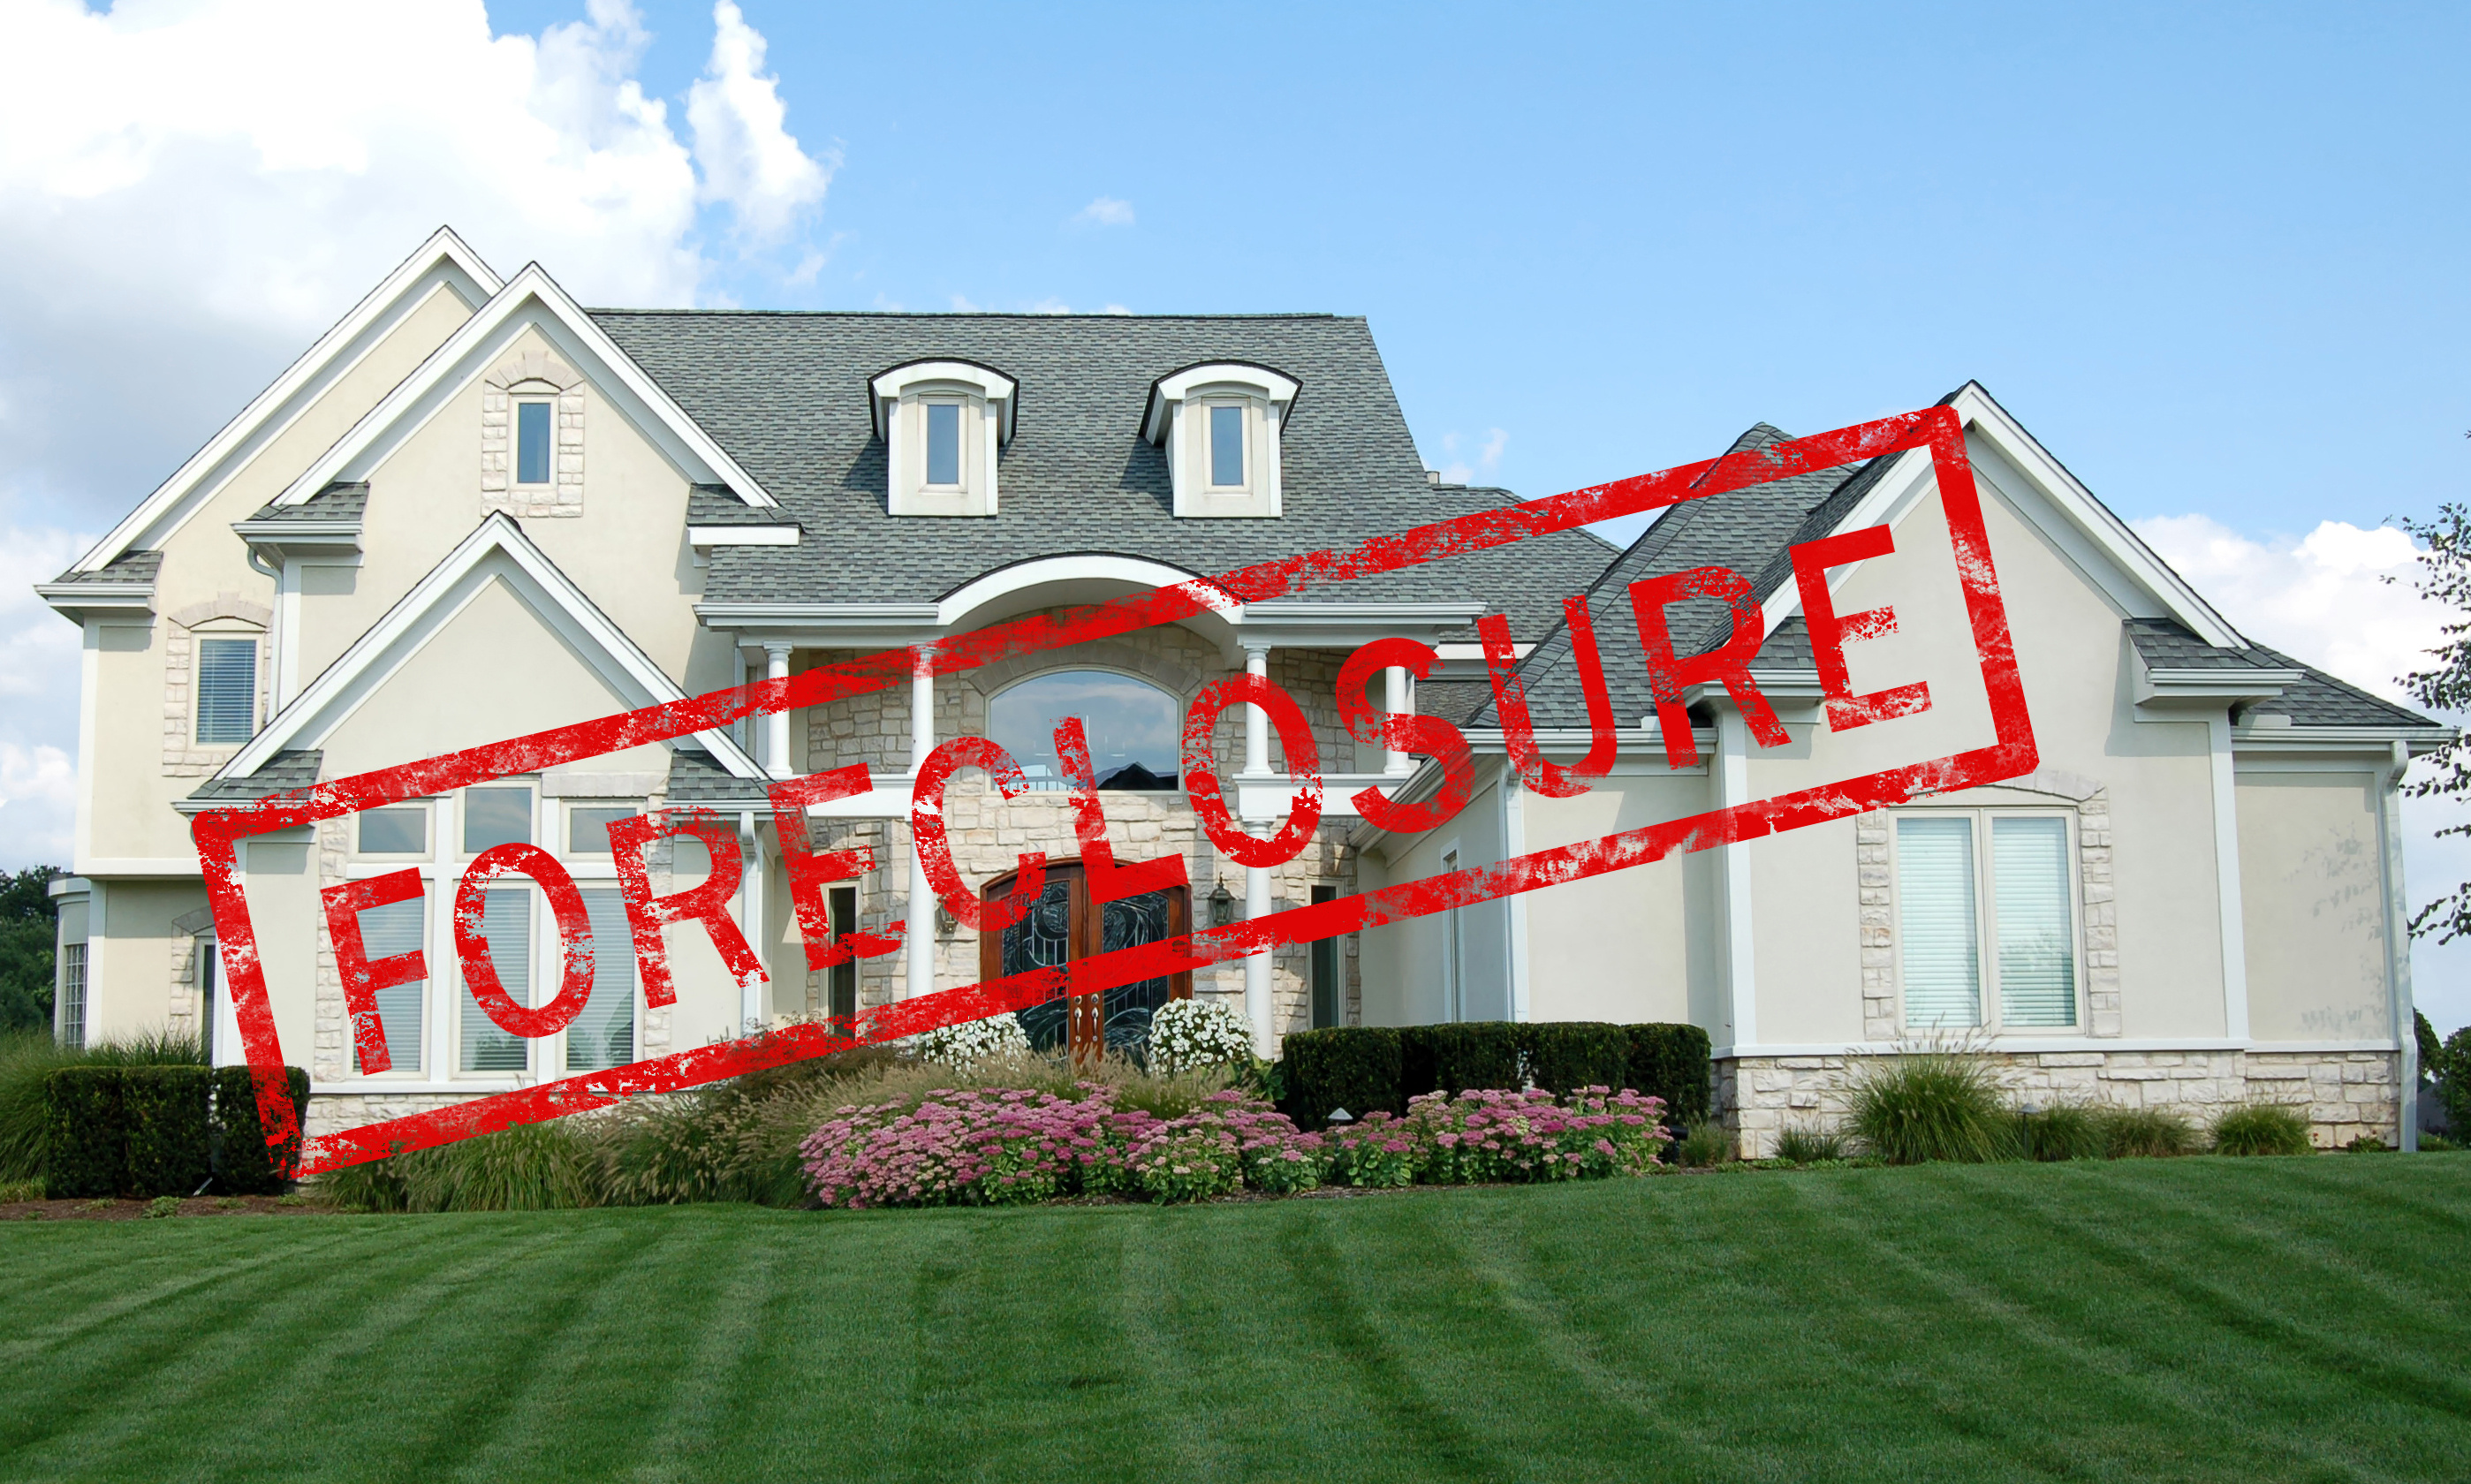 Call GVI Appraisals, Inc. to order appraisals of Tuscaloosa foreclosures